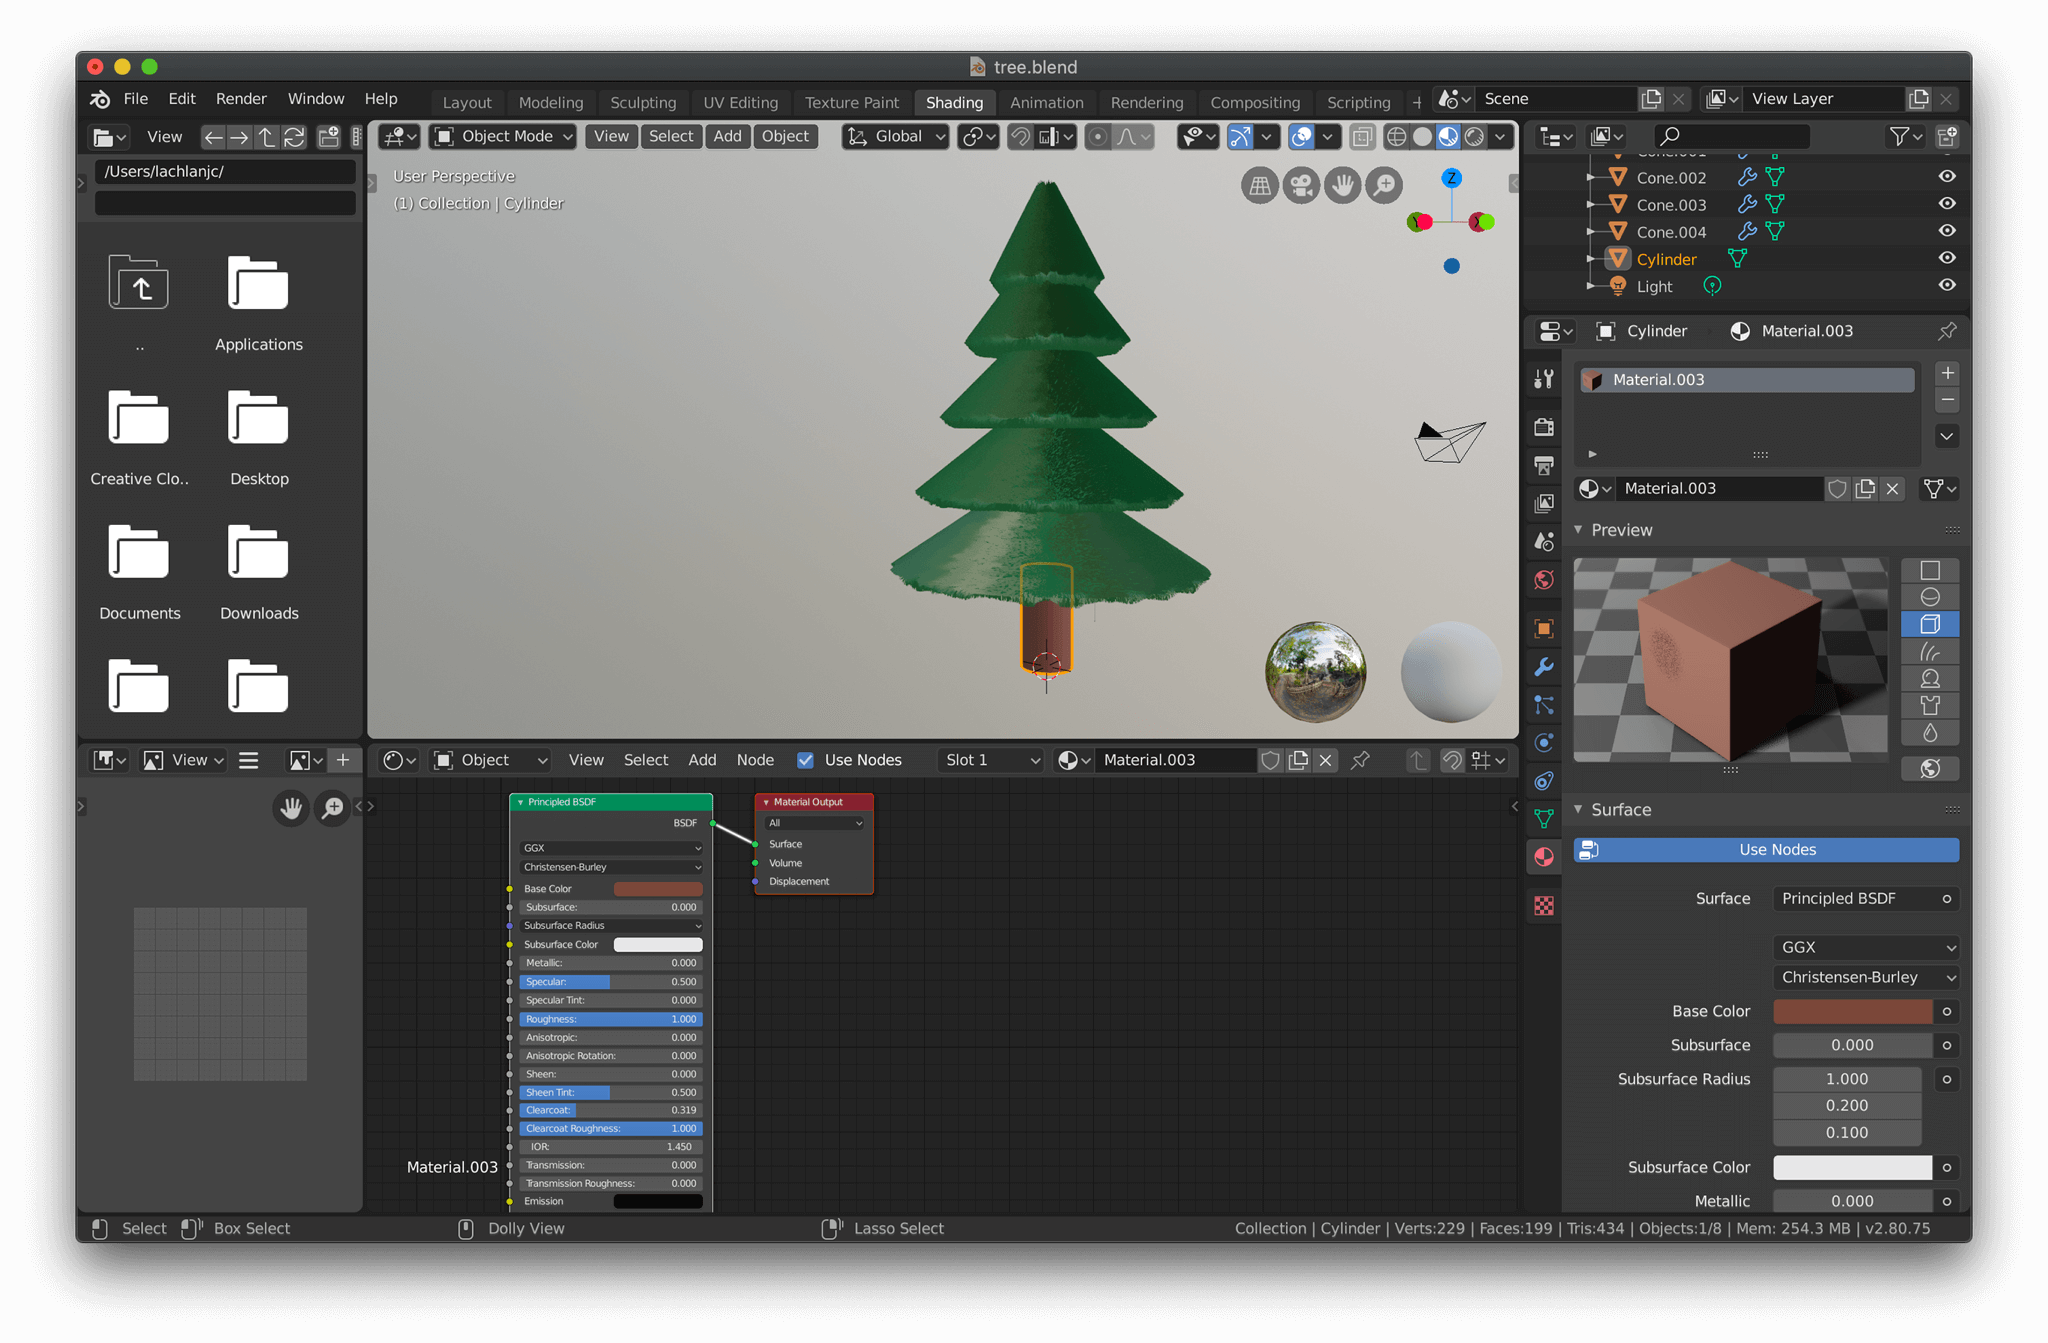 Modeling the tree in Blender